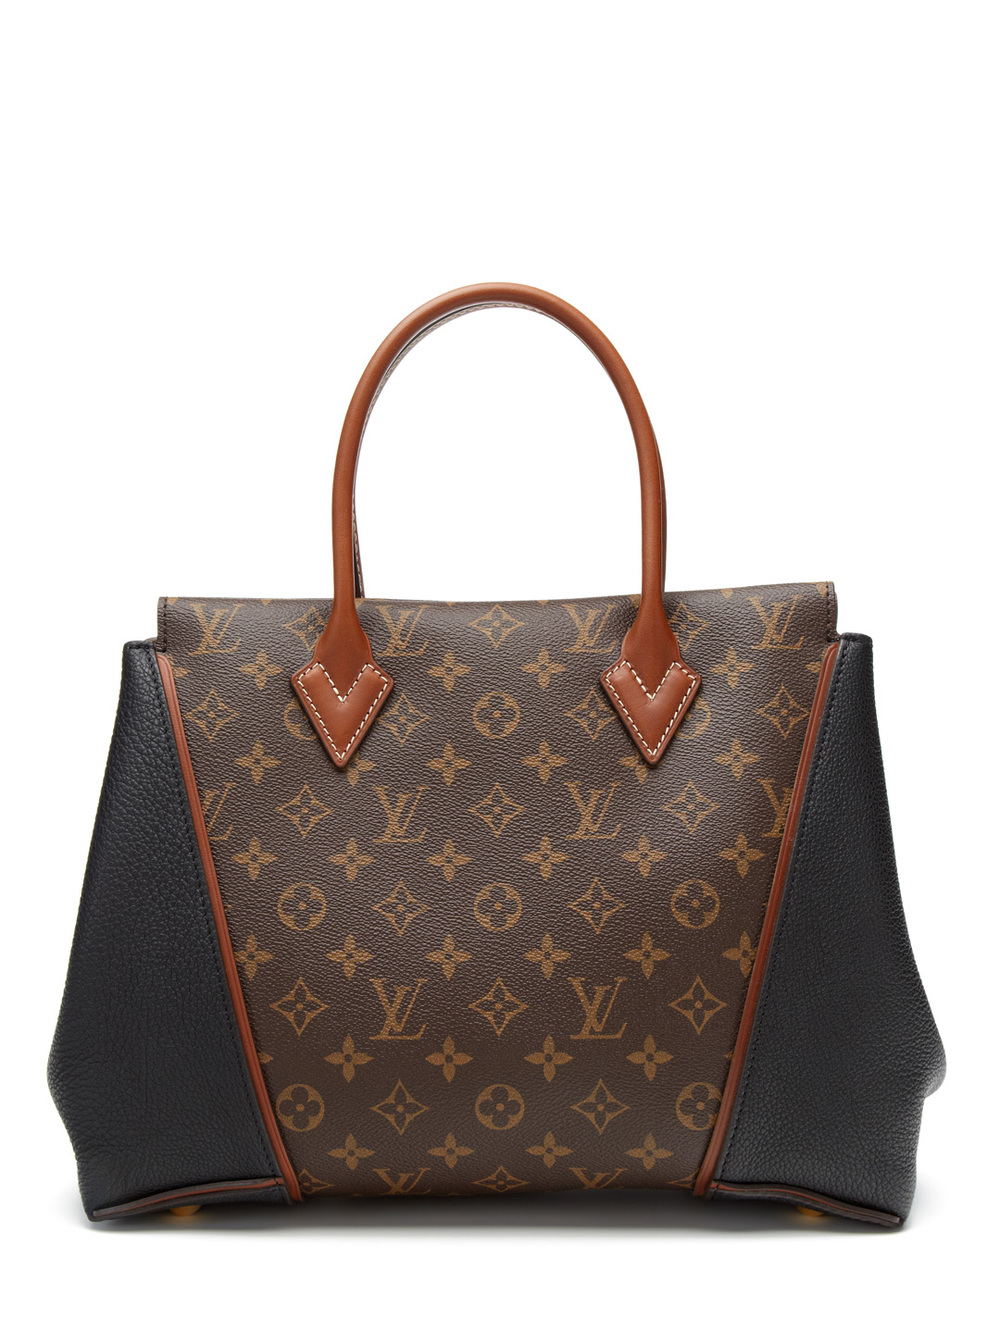 image_1_09_louis_vuitton_lv_ohbf_02_2014_5_brown_and_black_1033767434_a_095.jpg